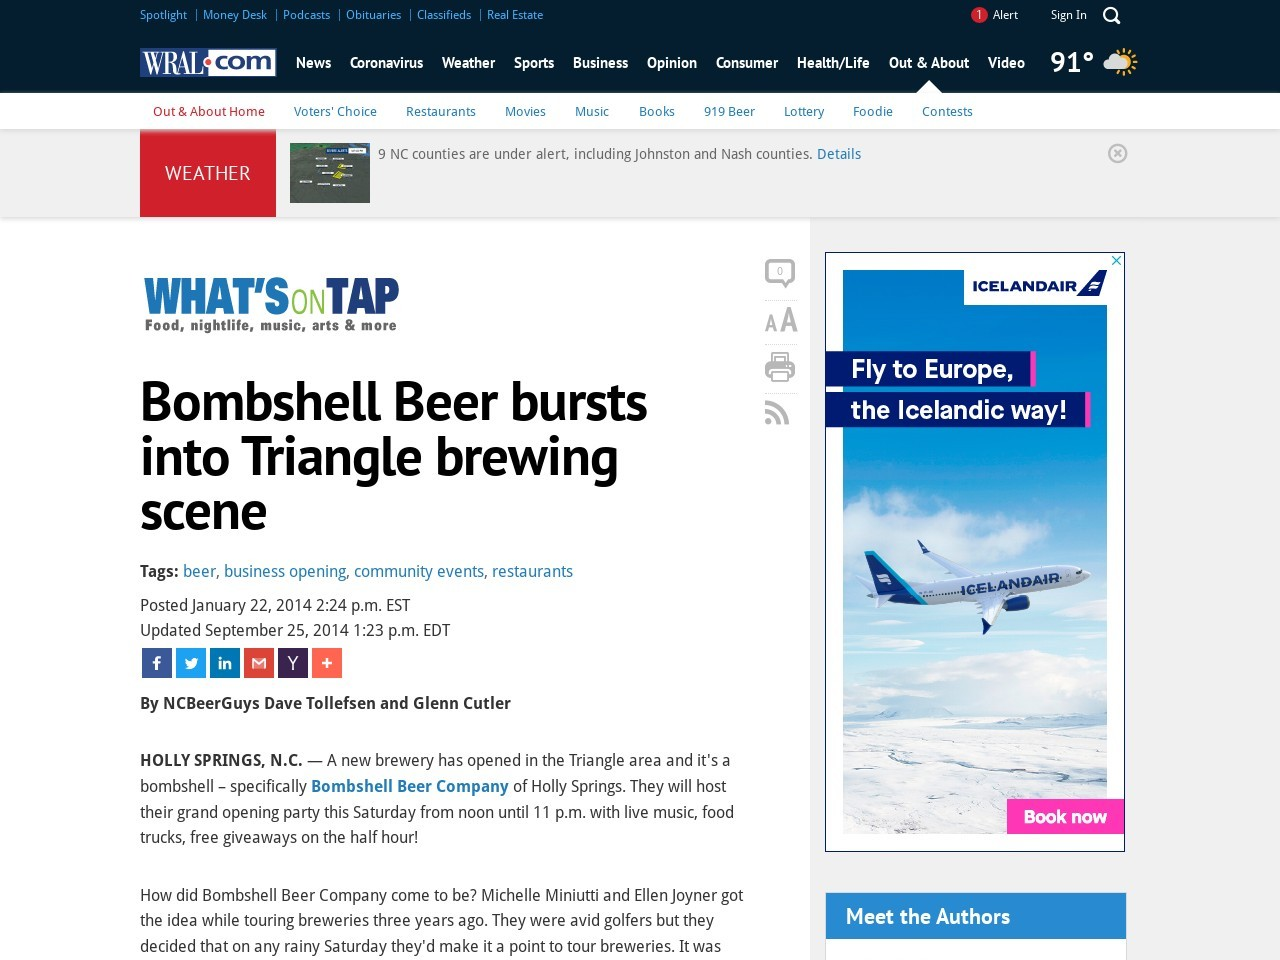 Bombshell Beer bursts into Triangle brewing scene